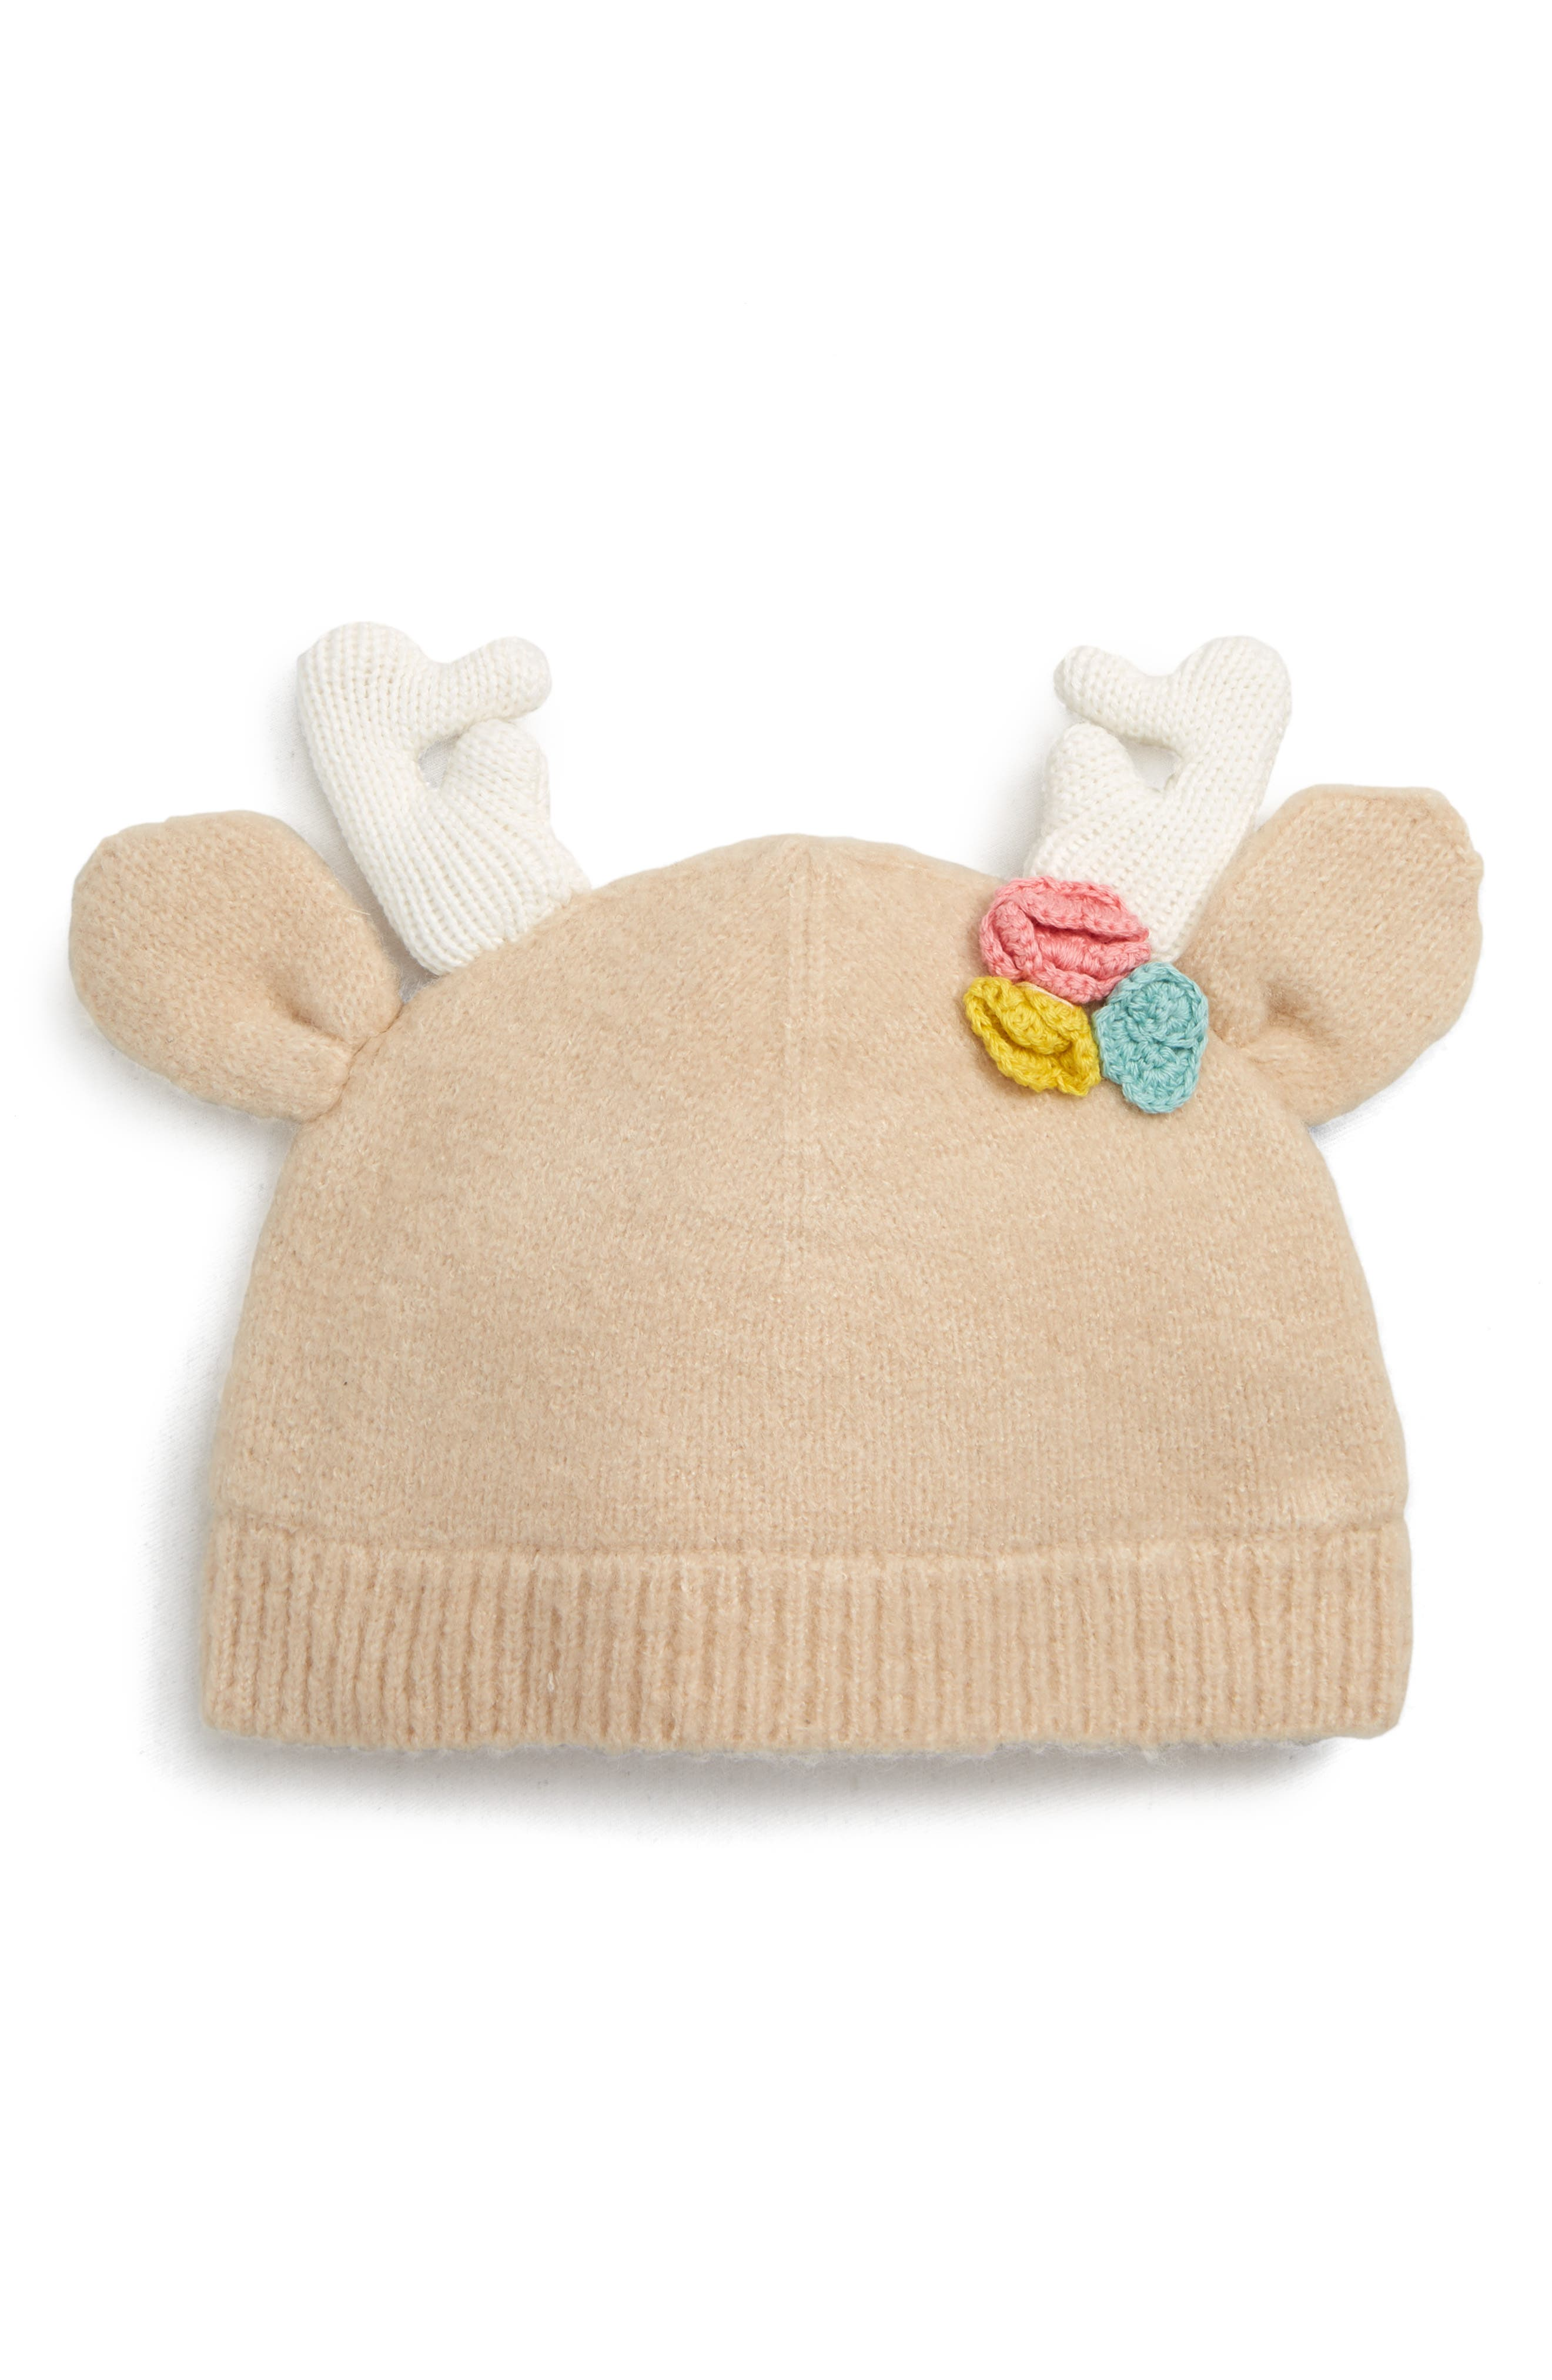 Cozy Floral Reindeer Hat,                             Main thumbnail 1, color,                             BEIGE SMOKE